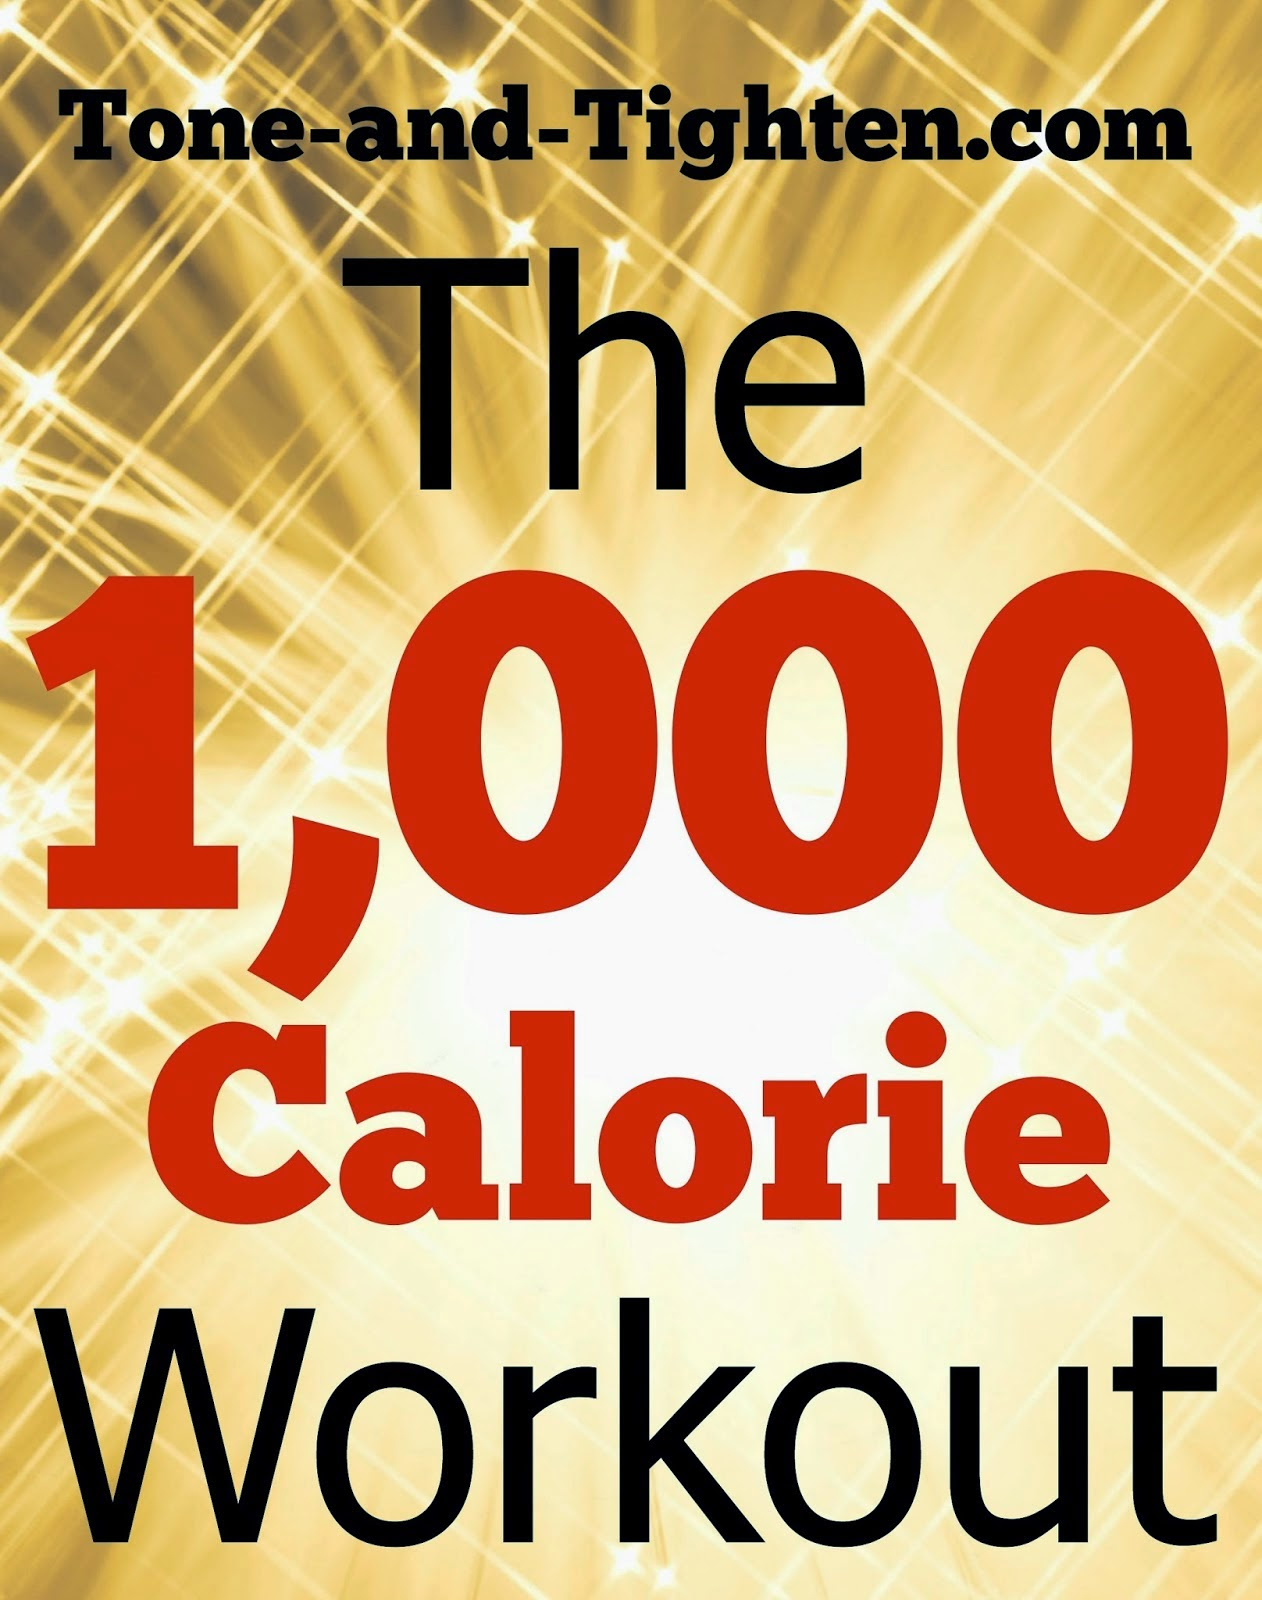 Weekly Workout Plan - Cardio and core workouts to tone and ...